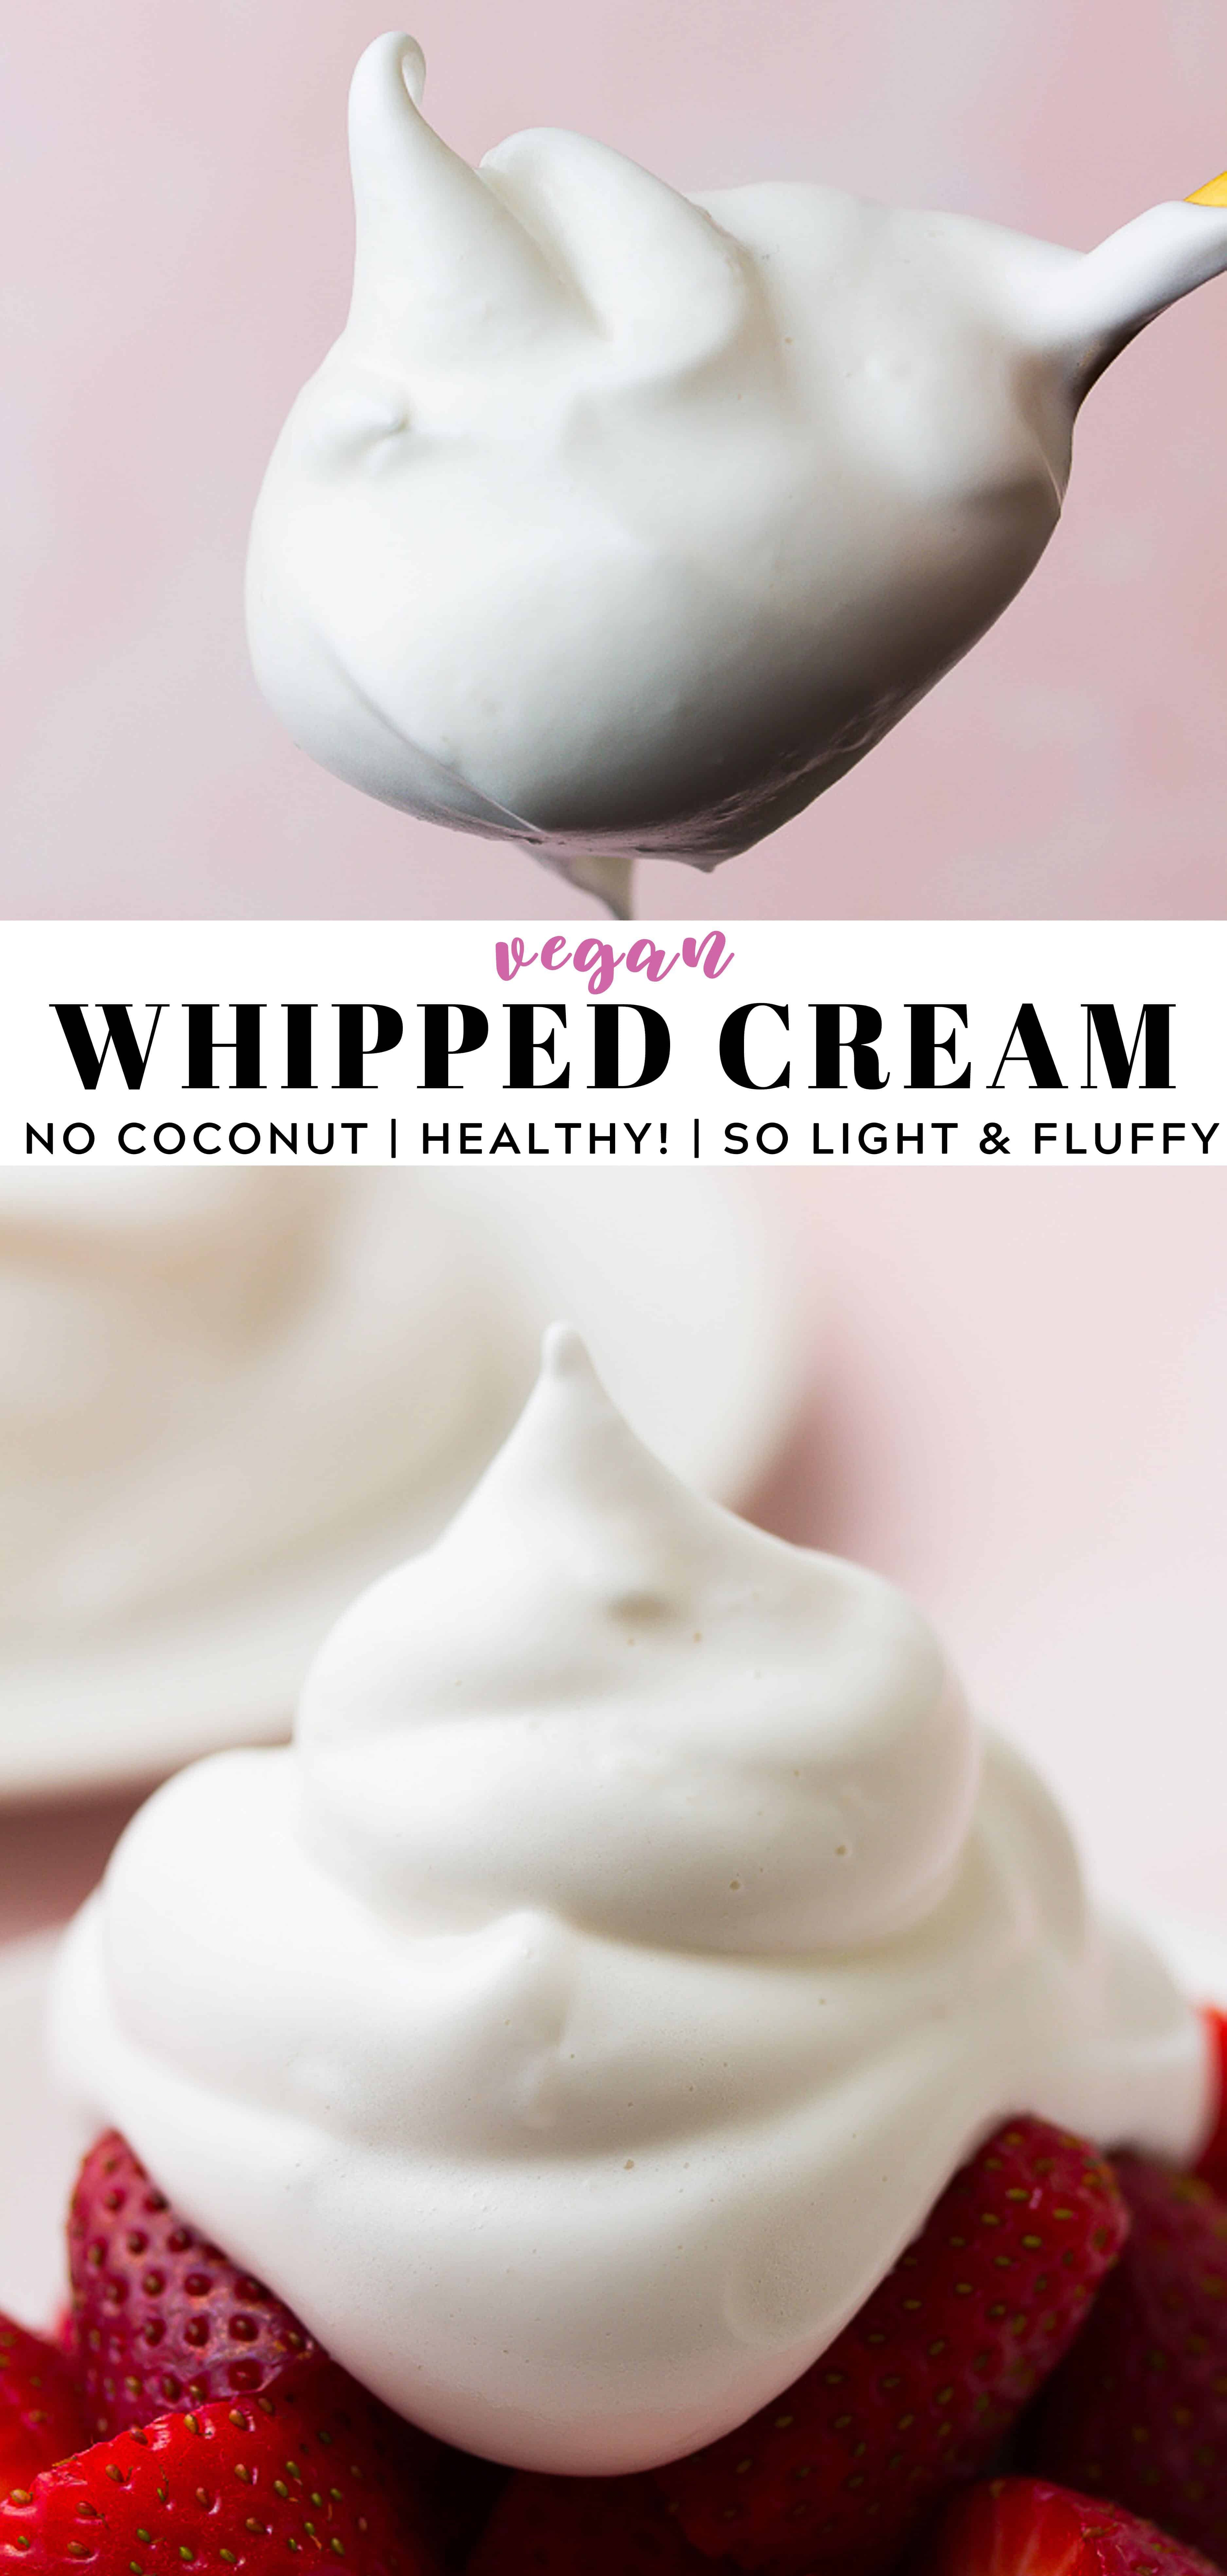 Easy Vegan Whipped Cream With No Coconut This Light And Fluffy Whipped Topping Is Hea Vegan Whipped Cream Recipes With Whipping Cream Dairy Free Whipped Cream